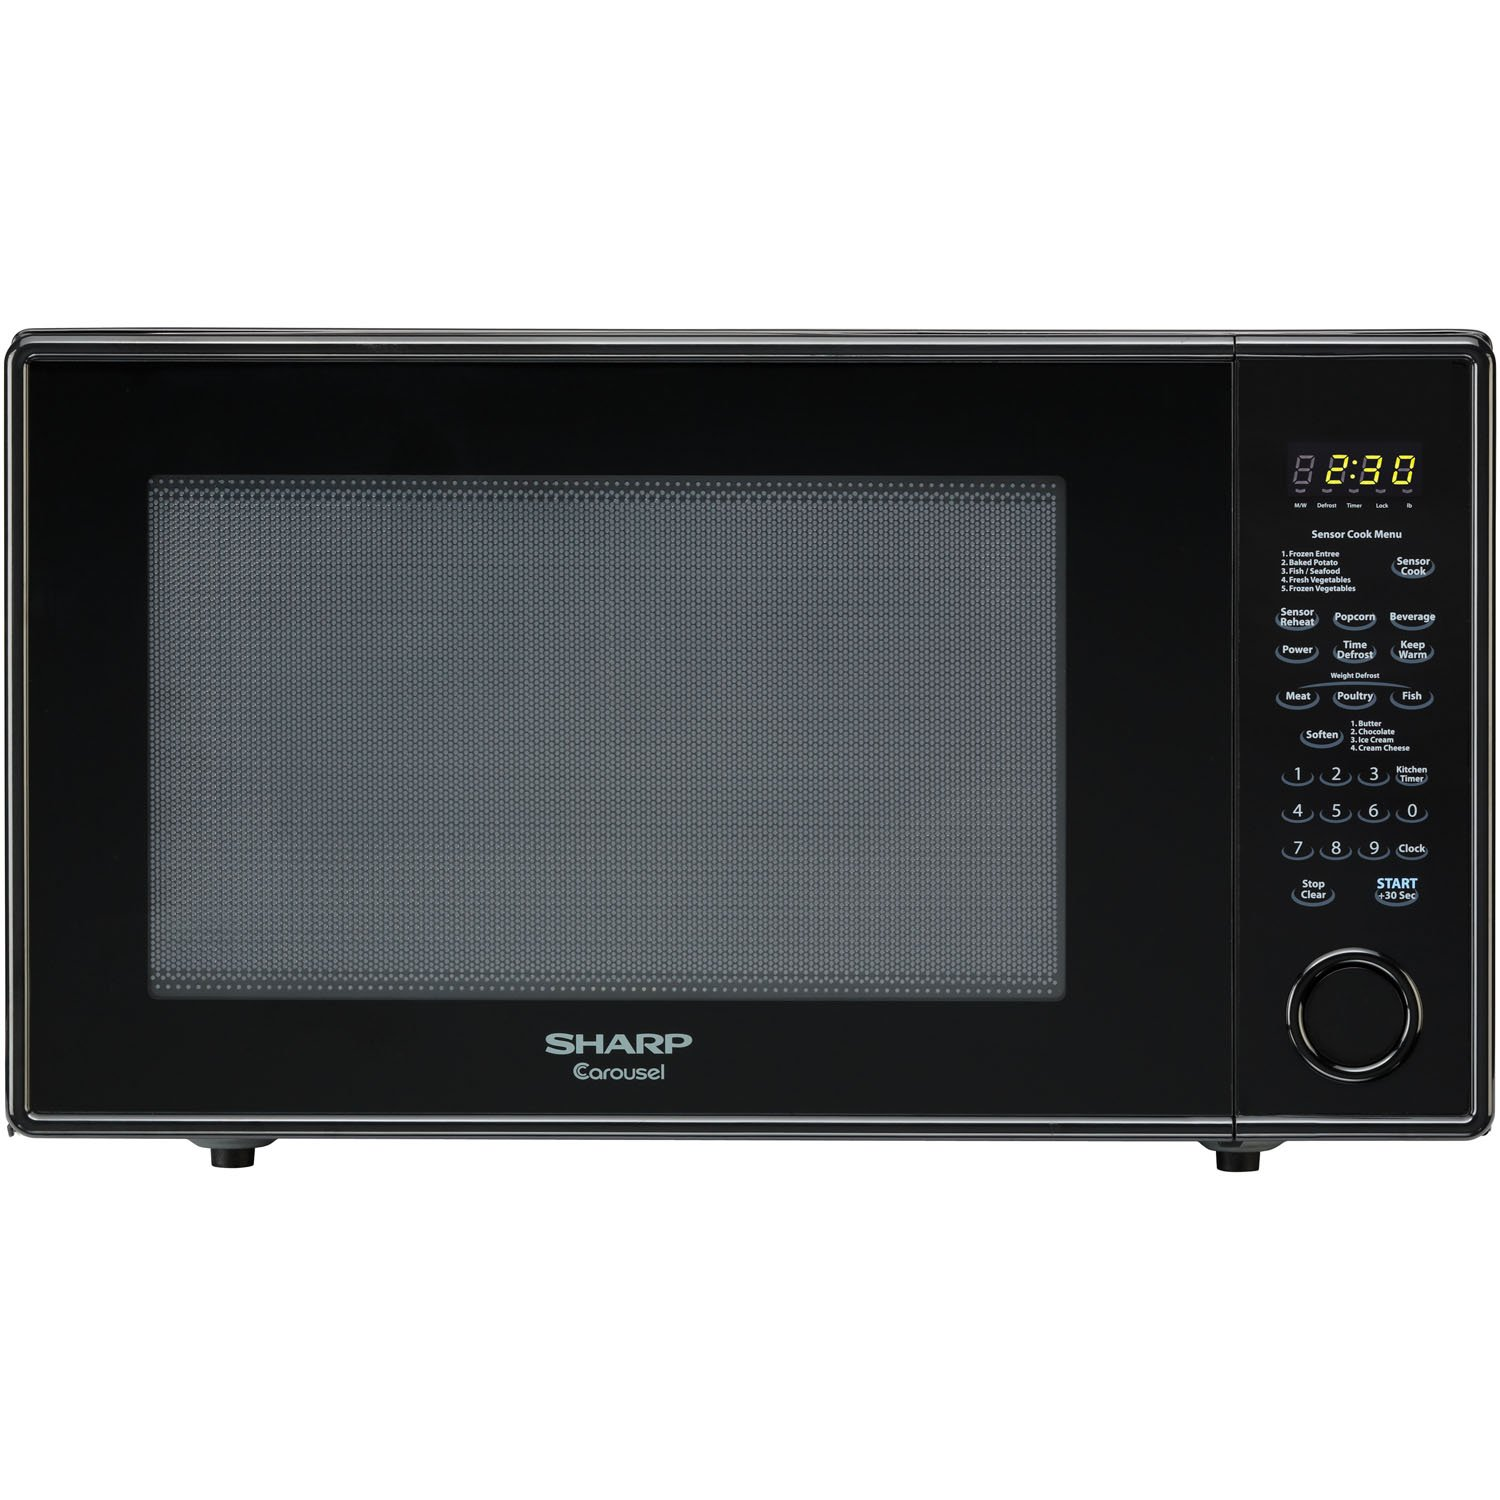 sd cu countertop trim microwave black for pdp steel ft ovens stainless kit whirlpool